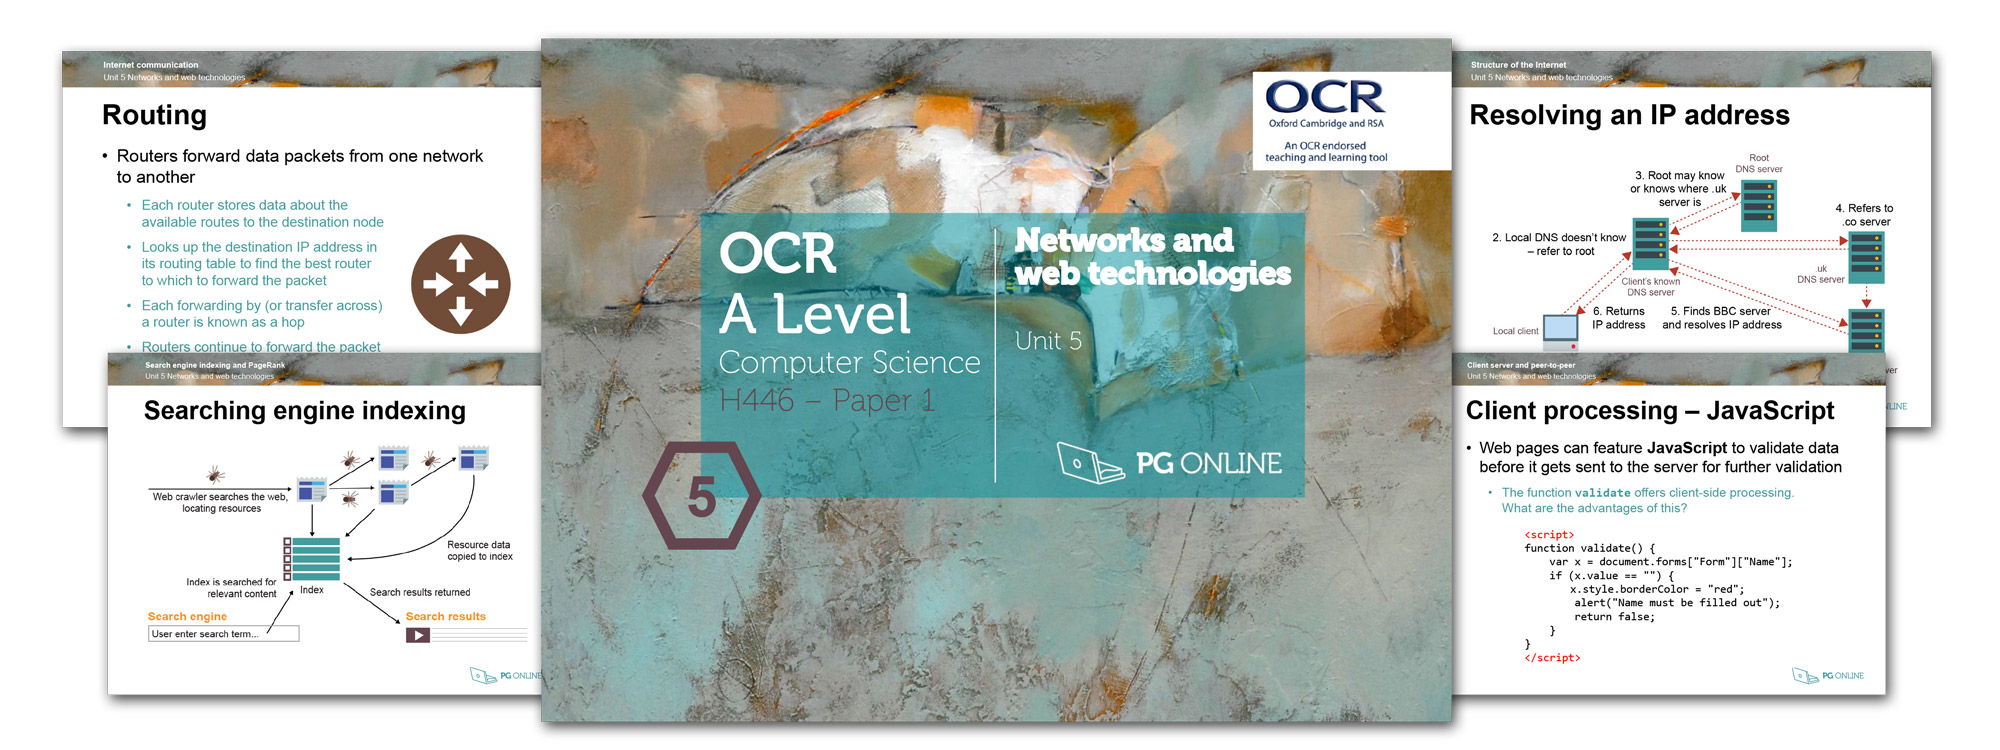 Ocr as ict coursework help